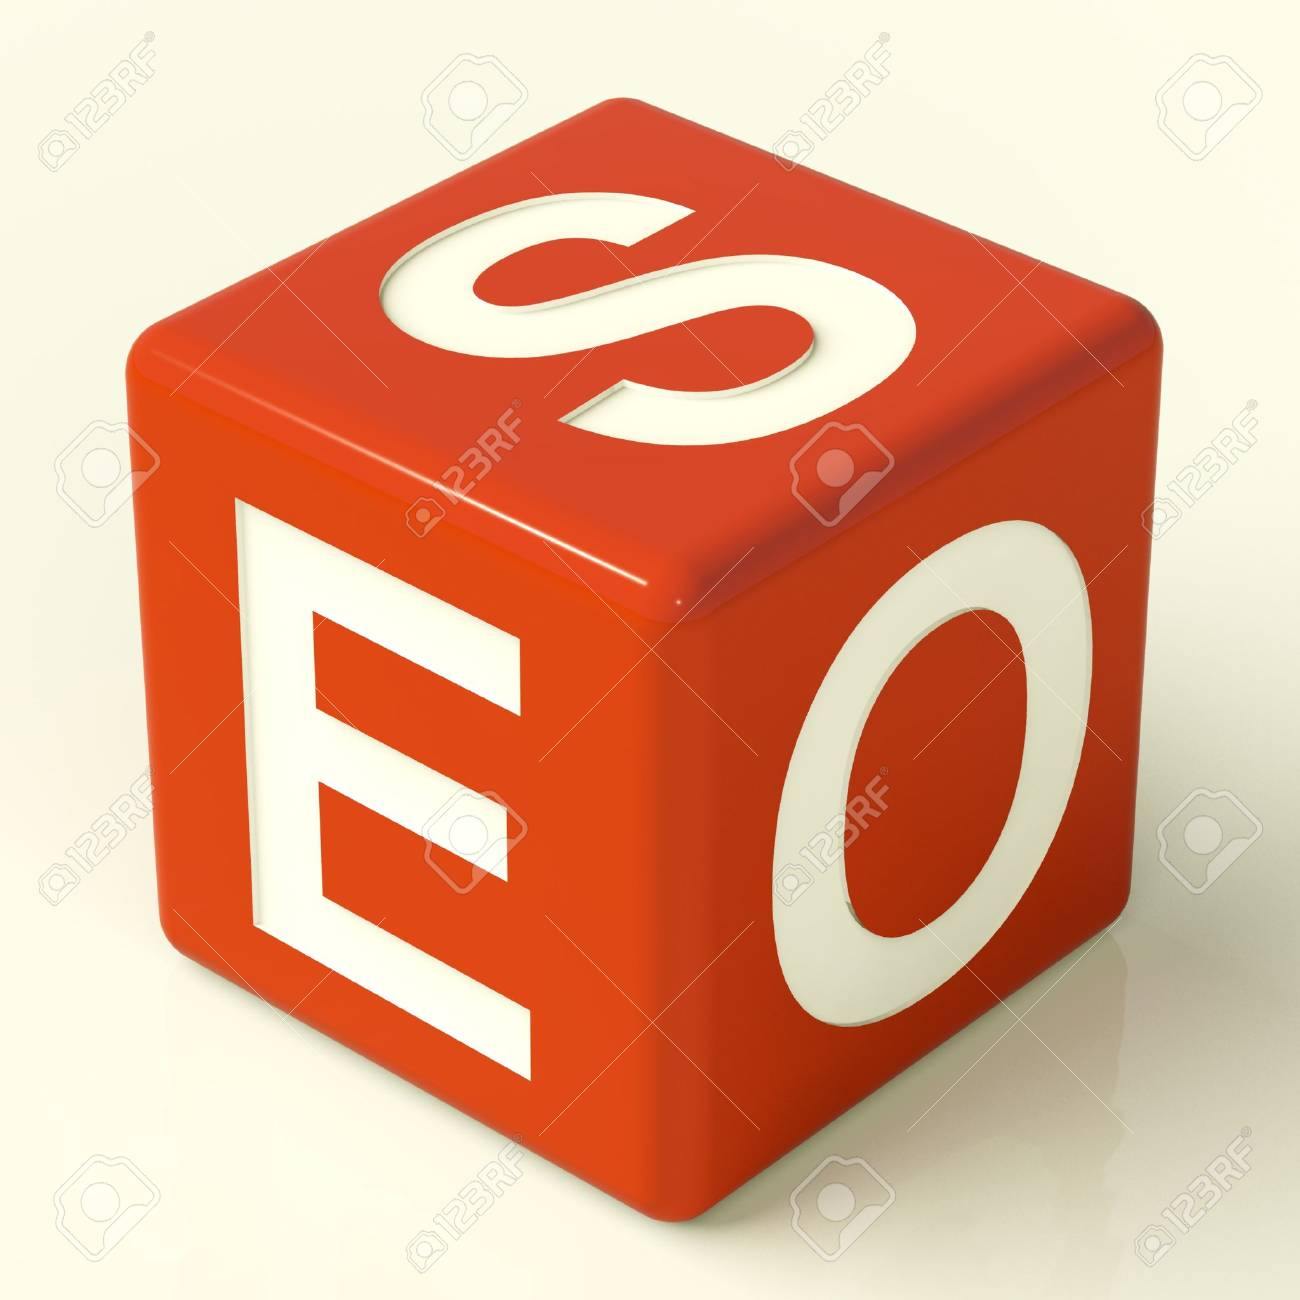 Seo Red Dice Representing Internet Optimization And Promotion Stock Photo - 11725369